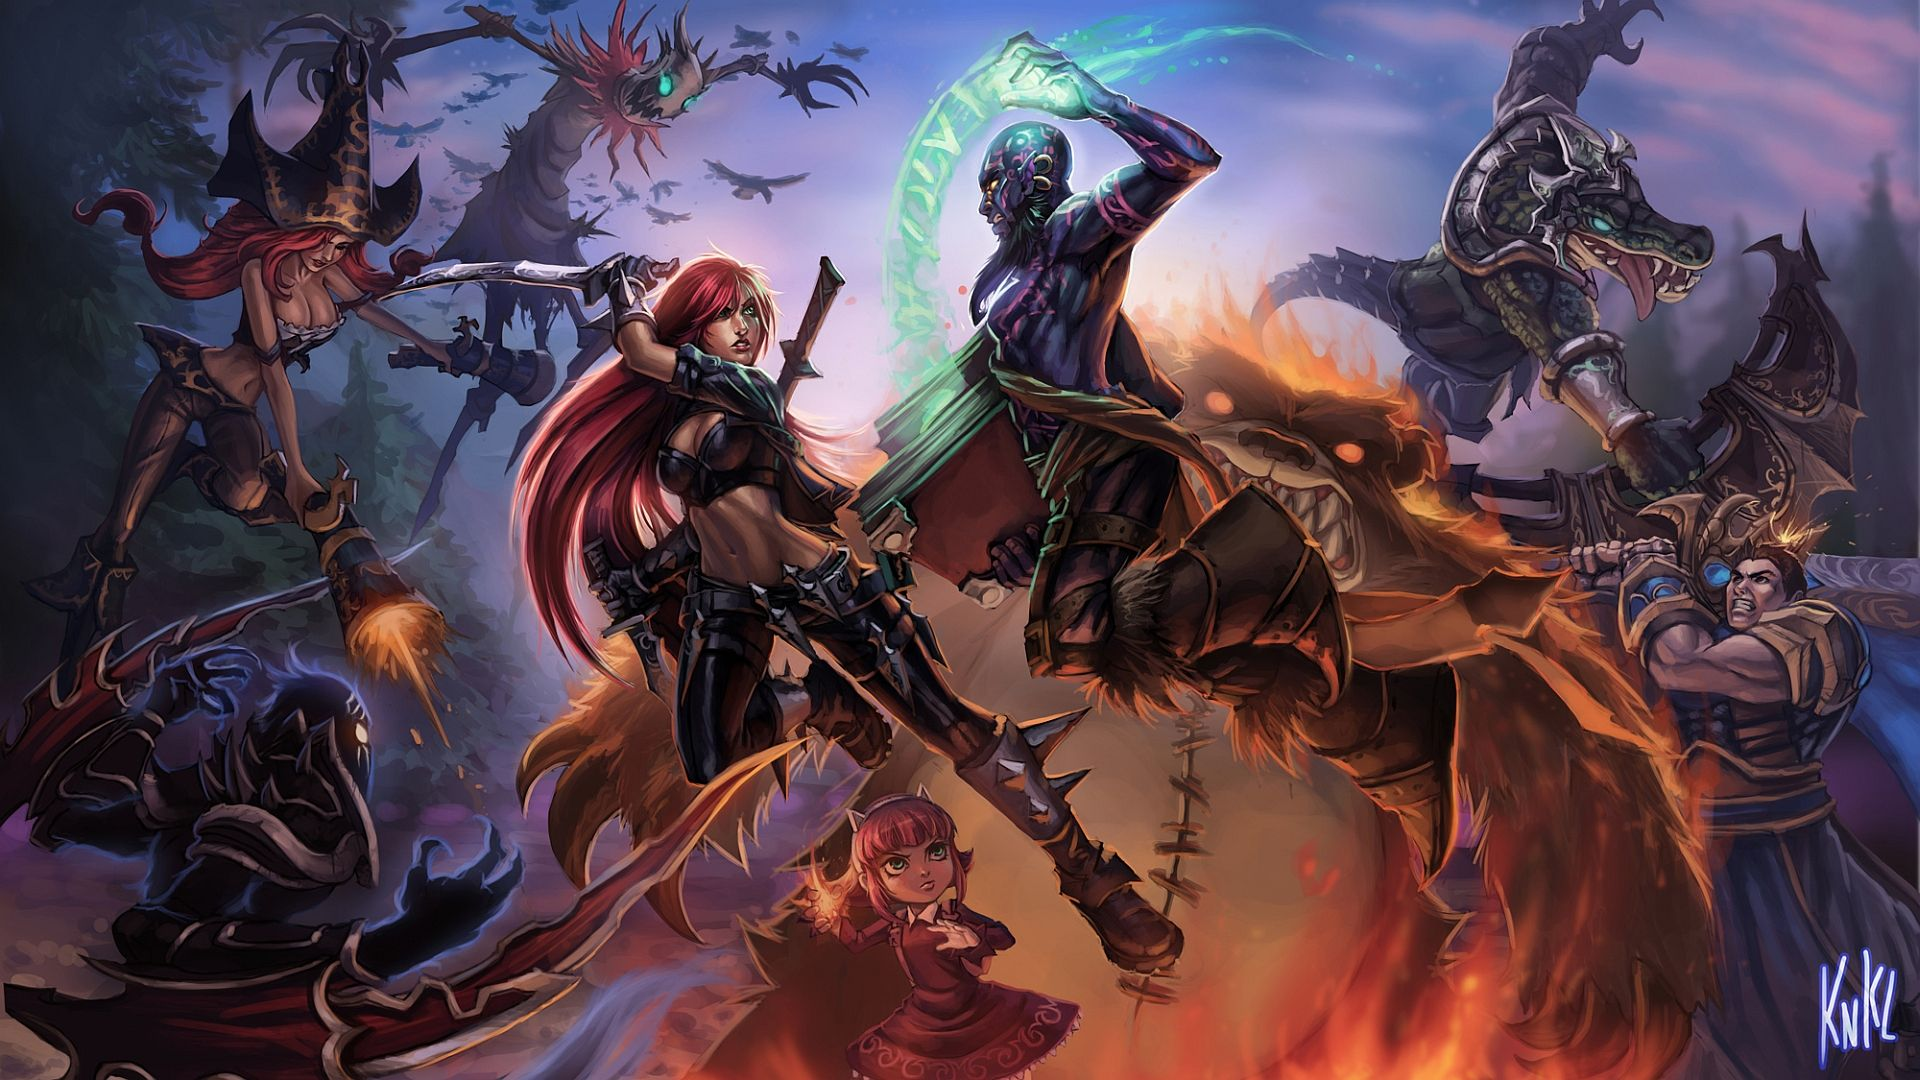 League Of Legends Wallpaper 1080p League Of Legends Game League Of Legends Lol Champions